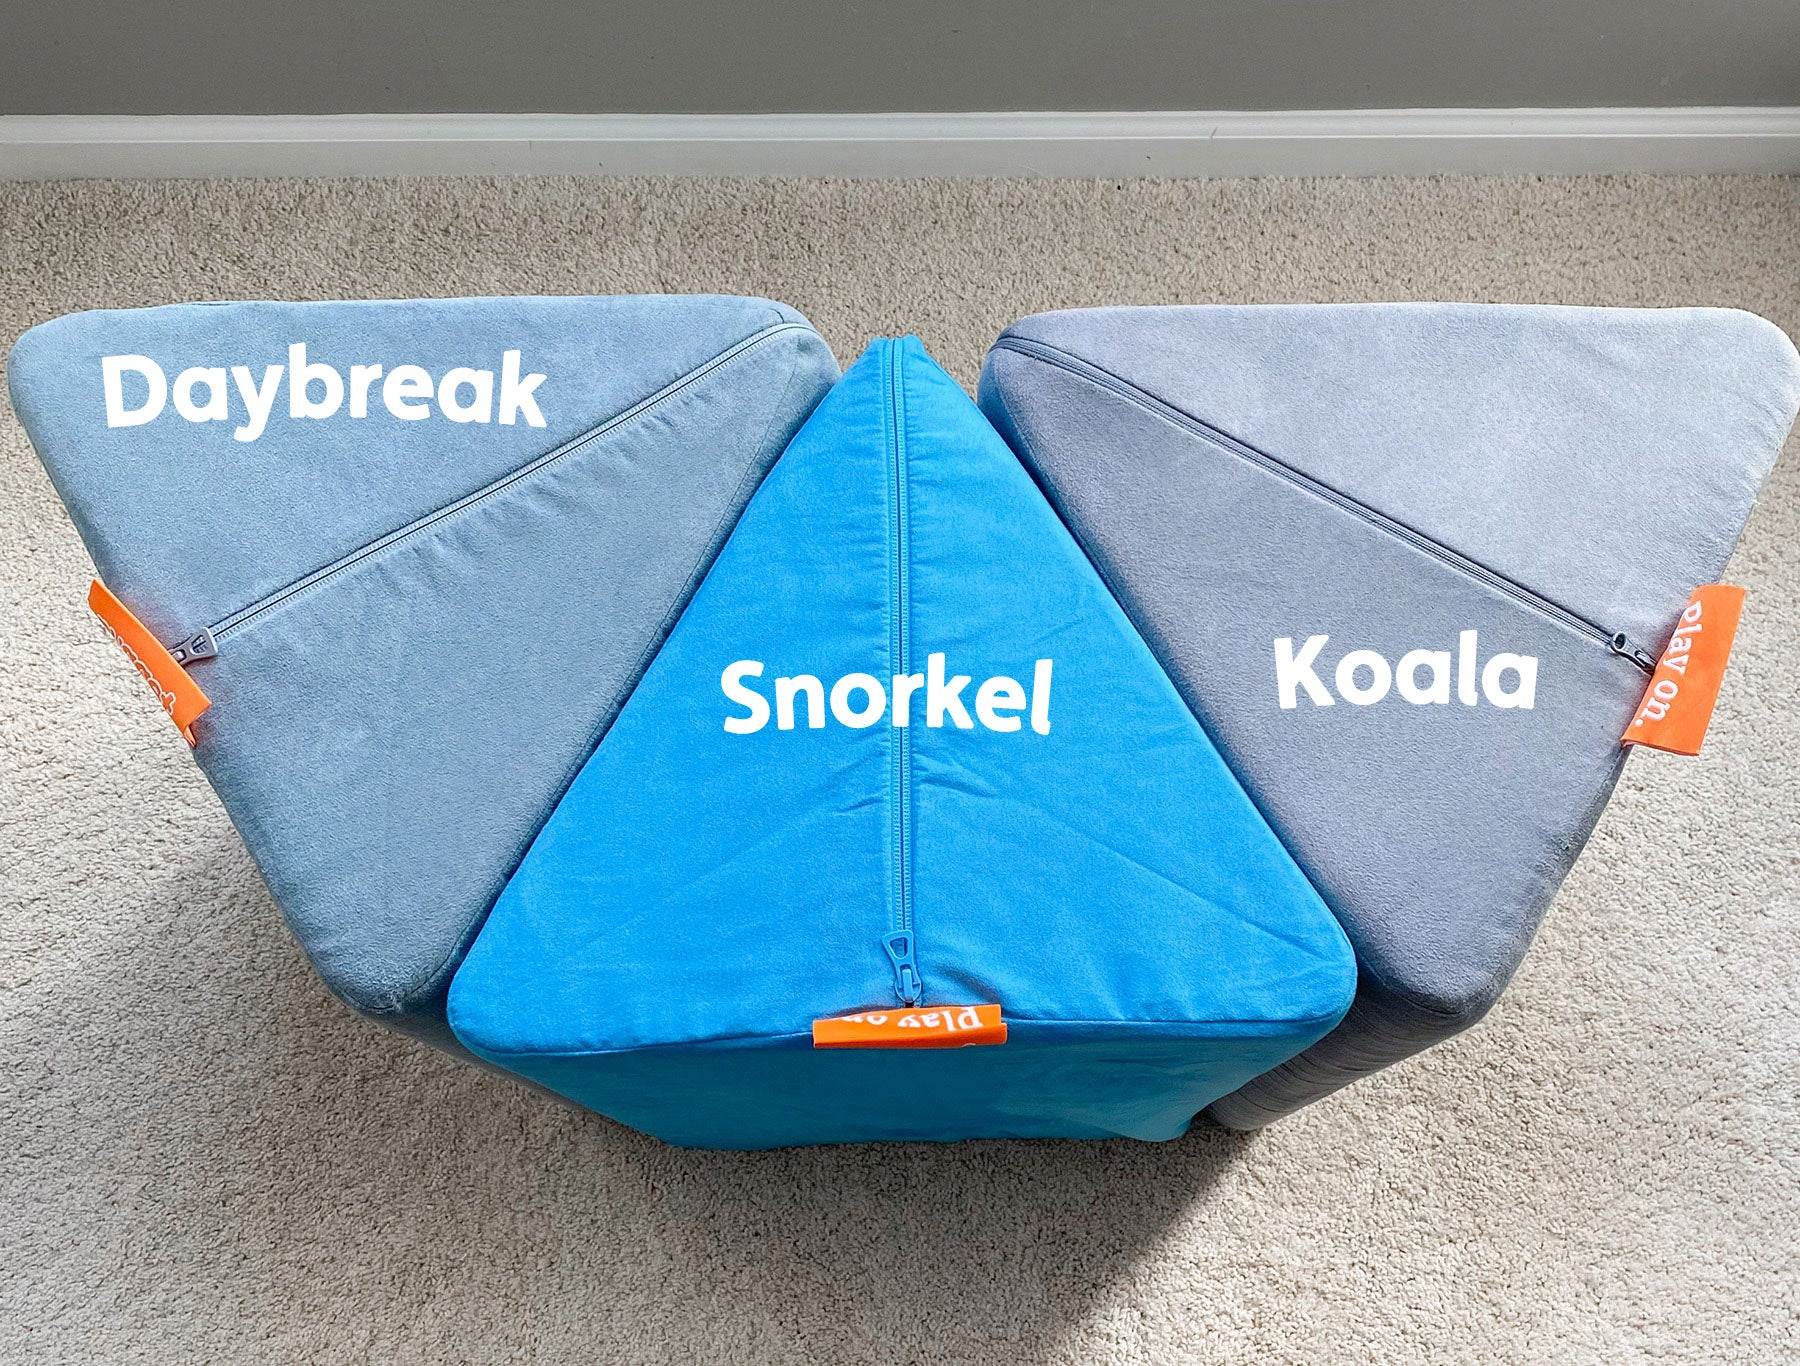 Photo comparing pillows in different Nugget colors: Daybreak —a warm, pale blue; Snorkel — a bright, popping aquamarine; Koala — a cool, light gray